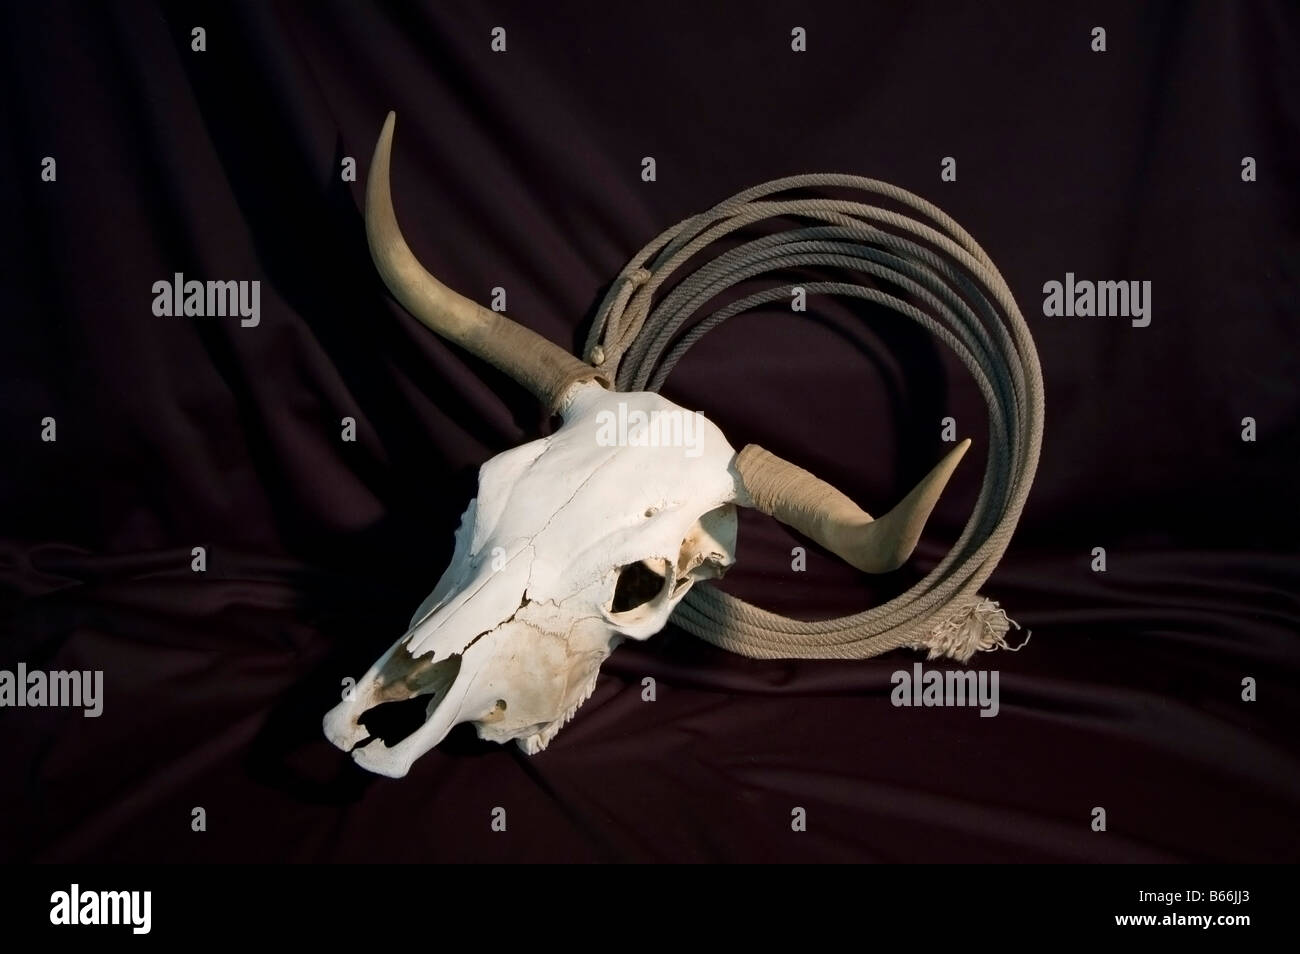 A bleached steer skull with horns and a coil of rope on a black background - Stock Image